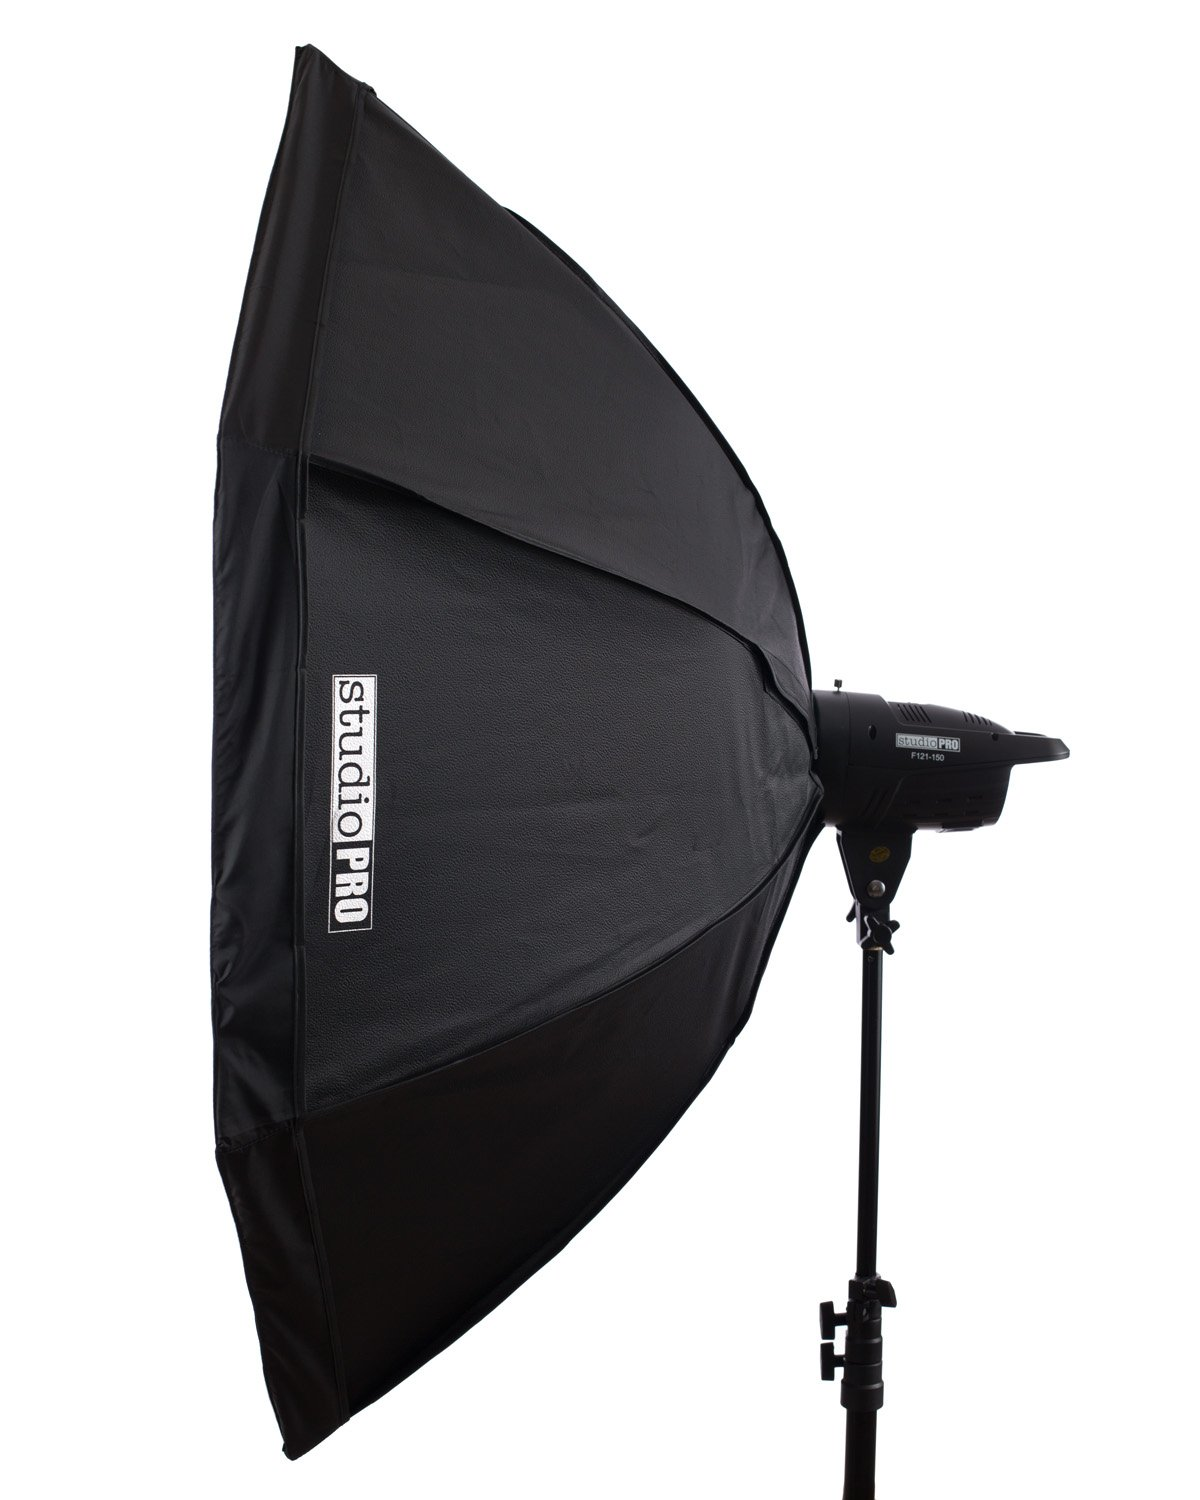 StudioPRO 68 Inch Octagon Softbox Photography Light Diffuser & Modifier with Bowens Speedring Mount For Monolight Photo Studio Strobe Lighting by Fovitec (Image #4)